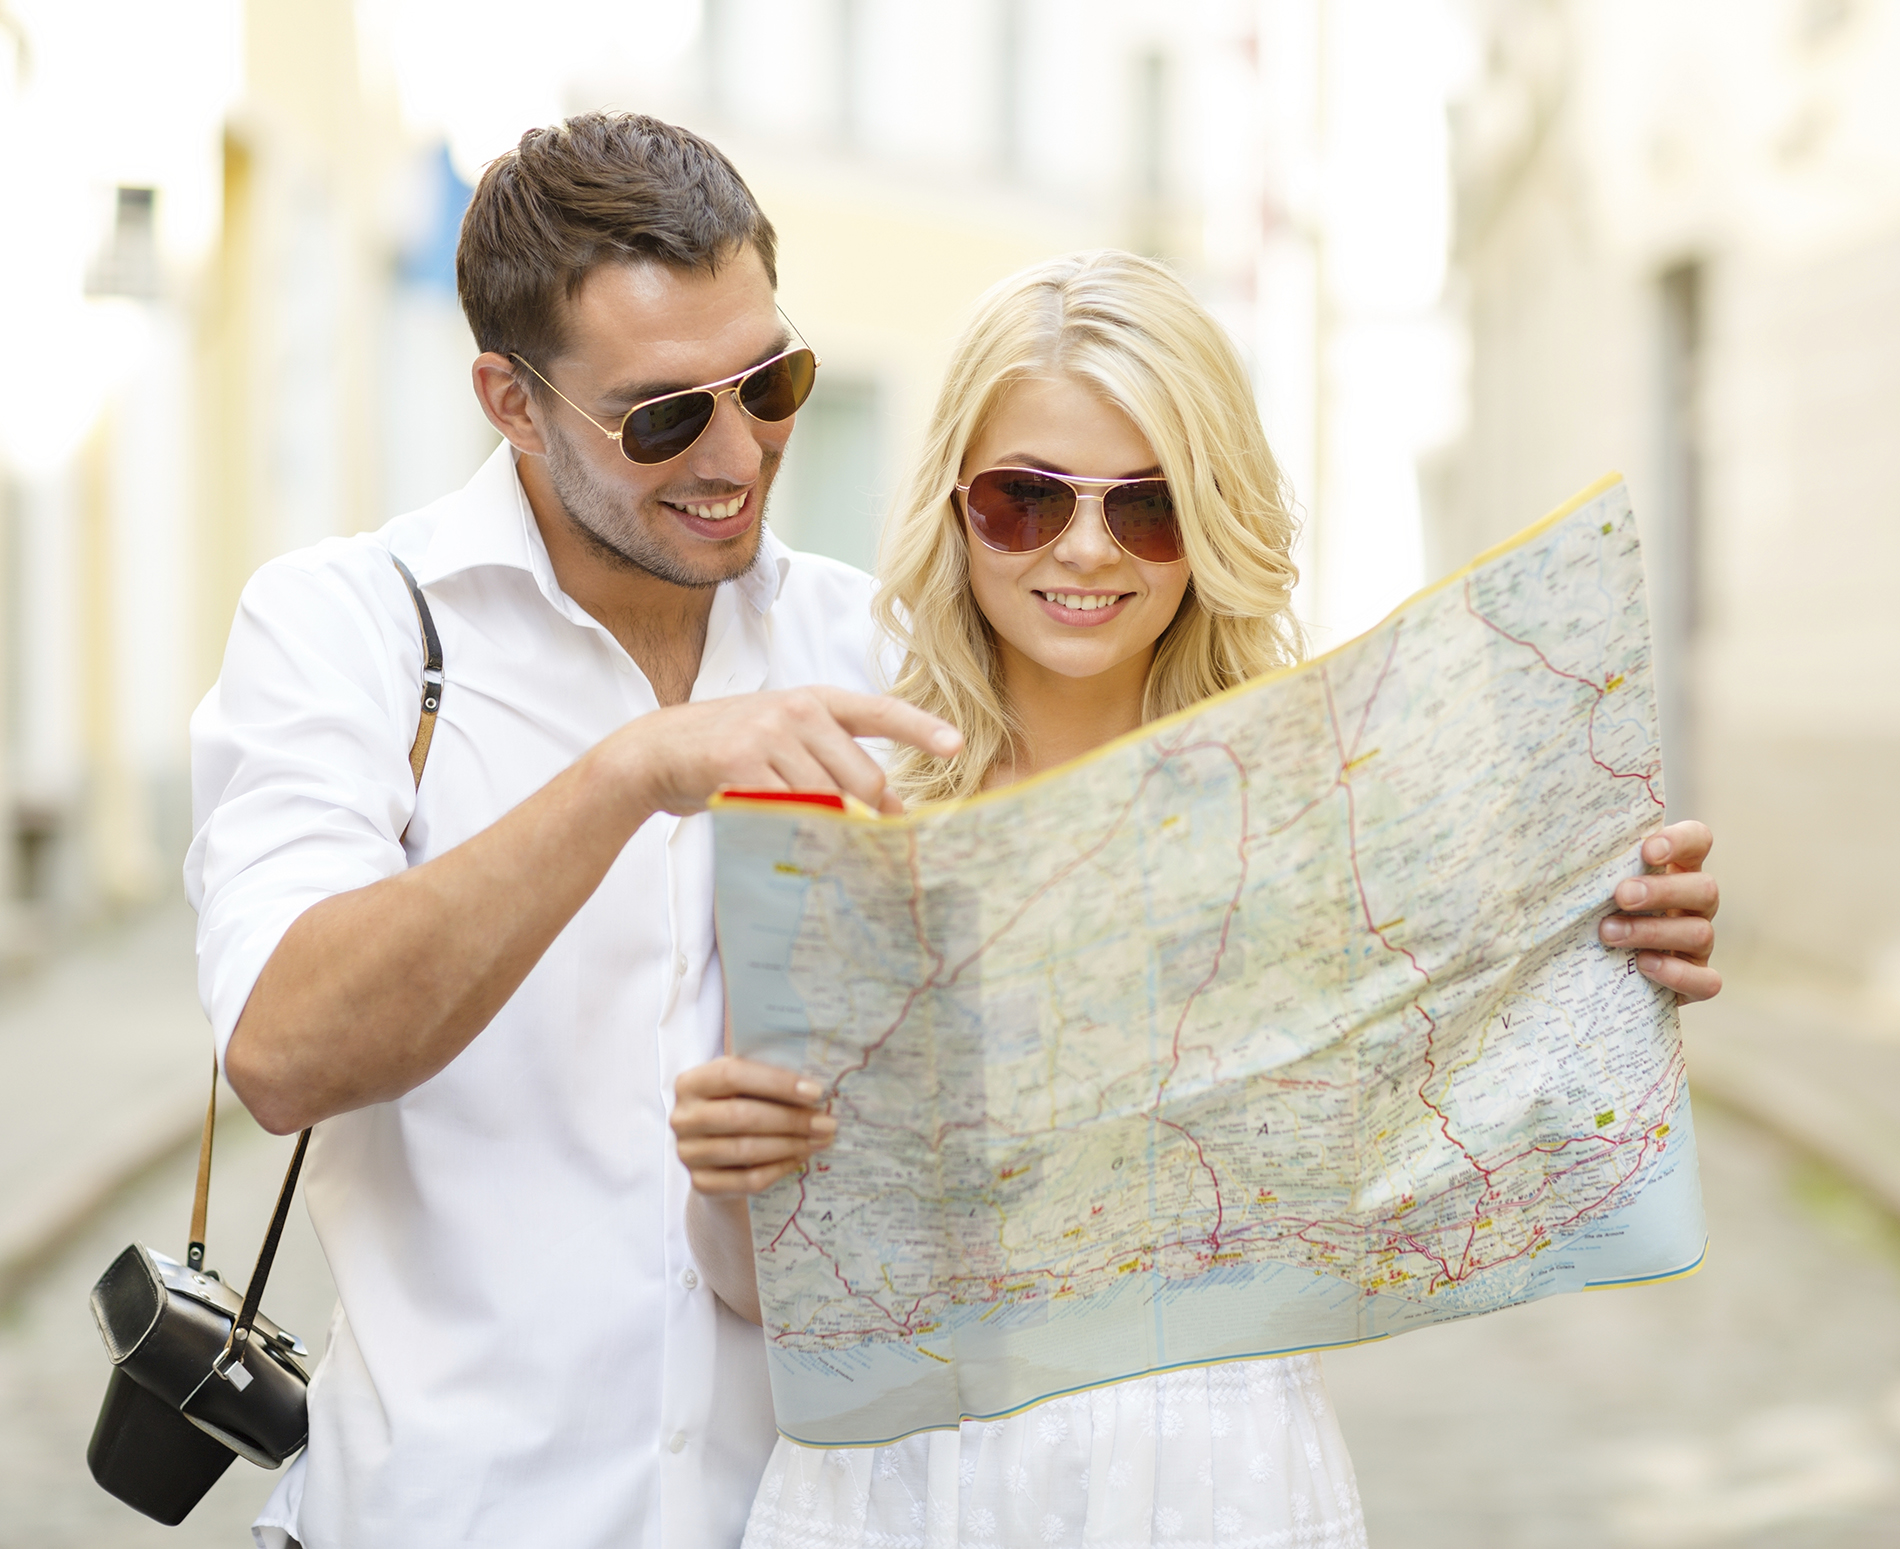 tourists-looking-at-map